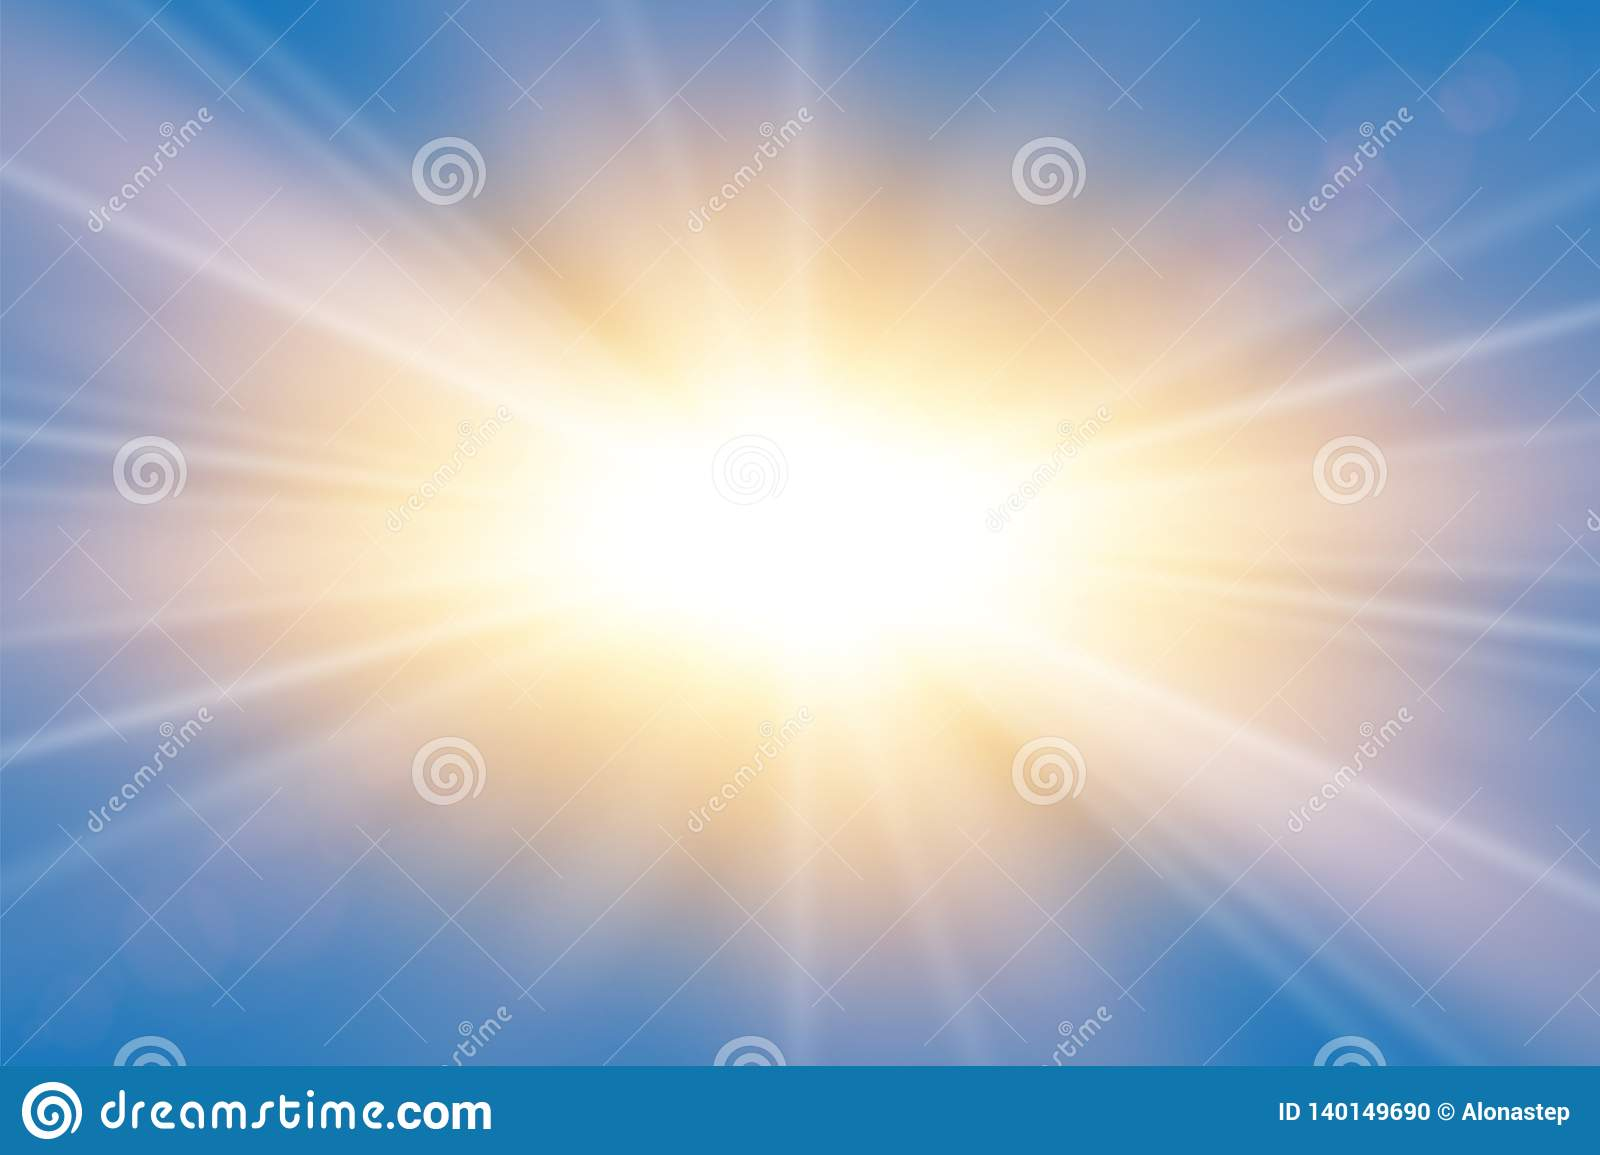 Sun rays. Starburst bright effect, isolated on blue background. Gold light star flash. Abstract shine beams. Vibrant